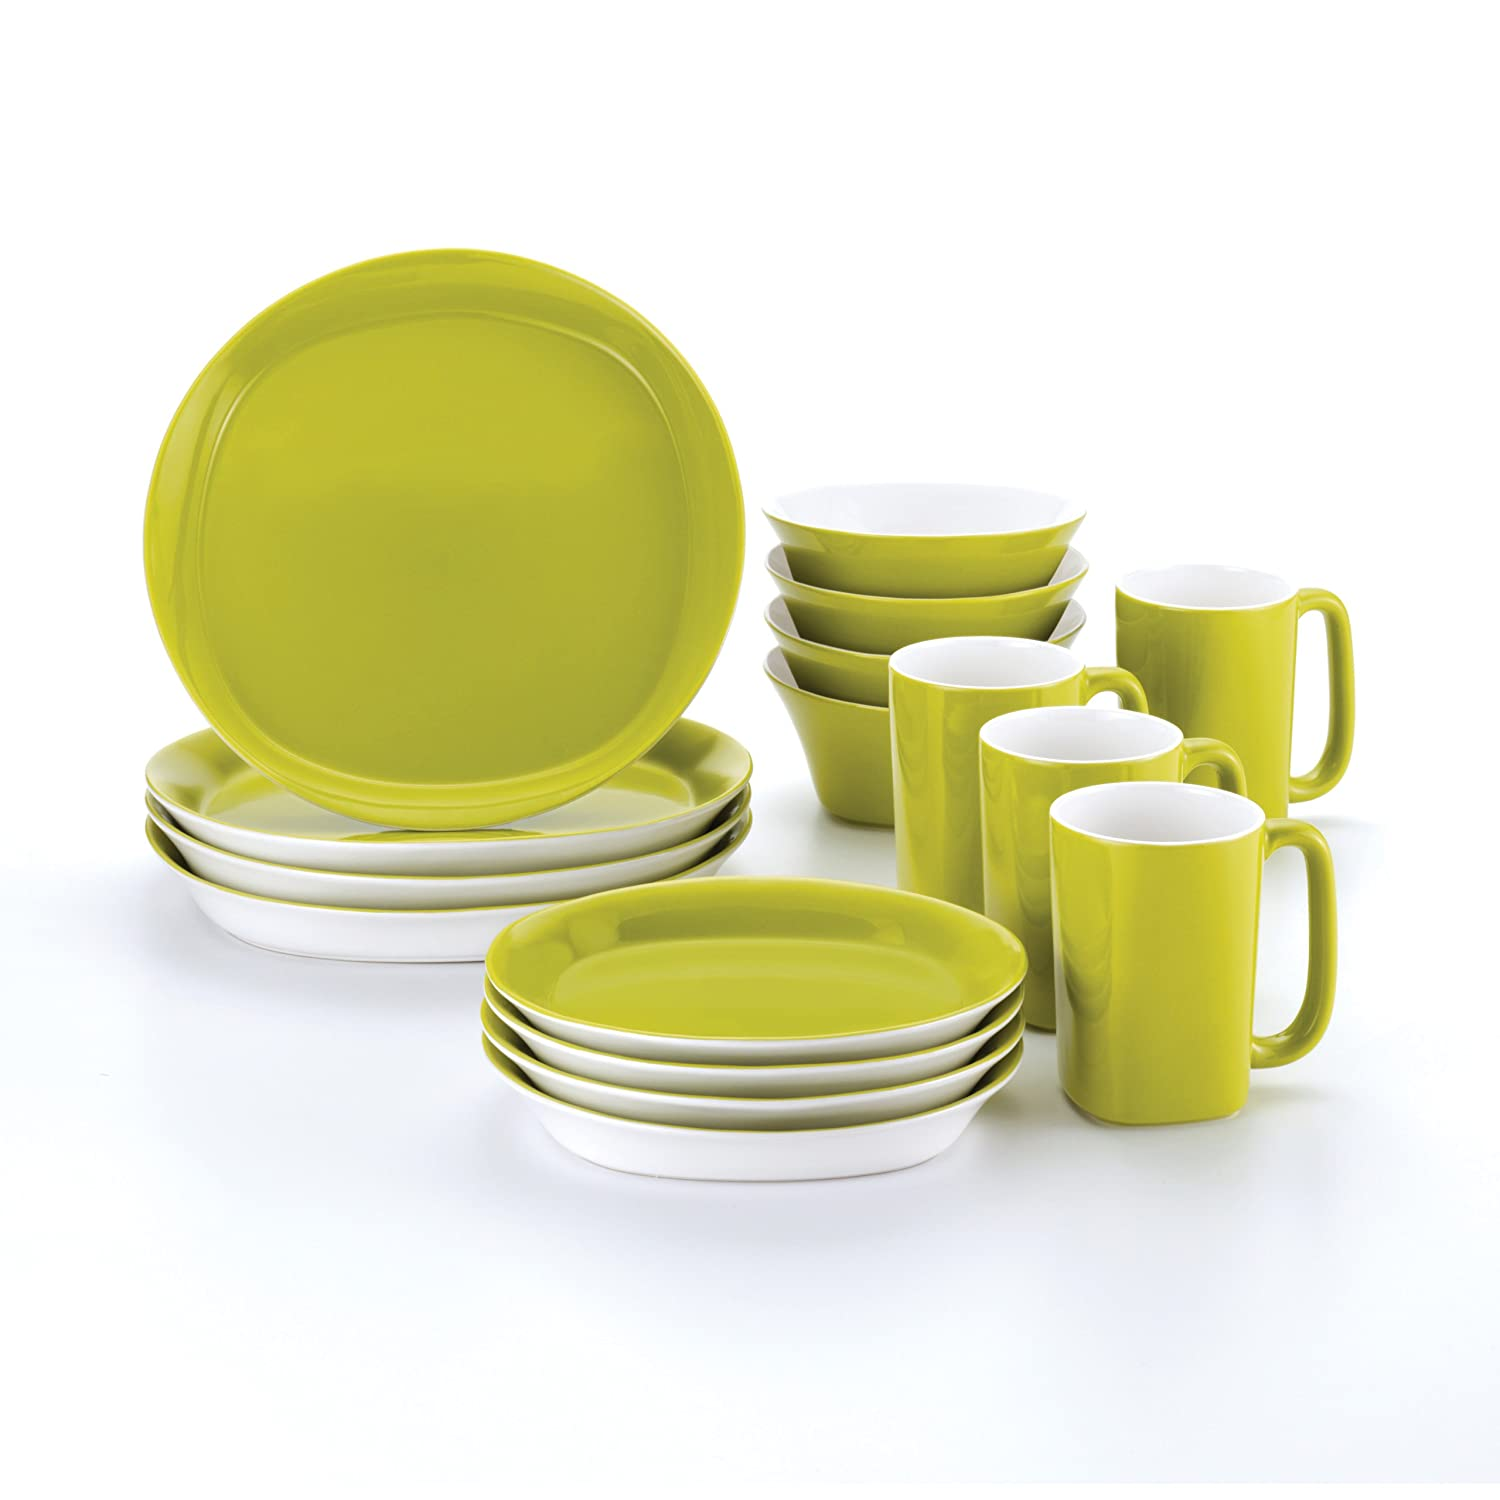 Amazon.com Rachael Ray Dinnerware Round and Square 16-Piece Dinnerware Set Green Rachel Ray Dinnerware Kitchen \u0026 Dining  sc 1 st  Amazon.com & Amazon.com: Rachael Ray Dinnerware Round and Square 16-Piece ...